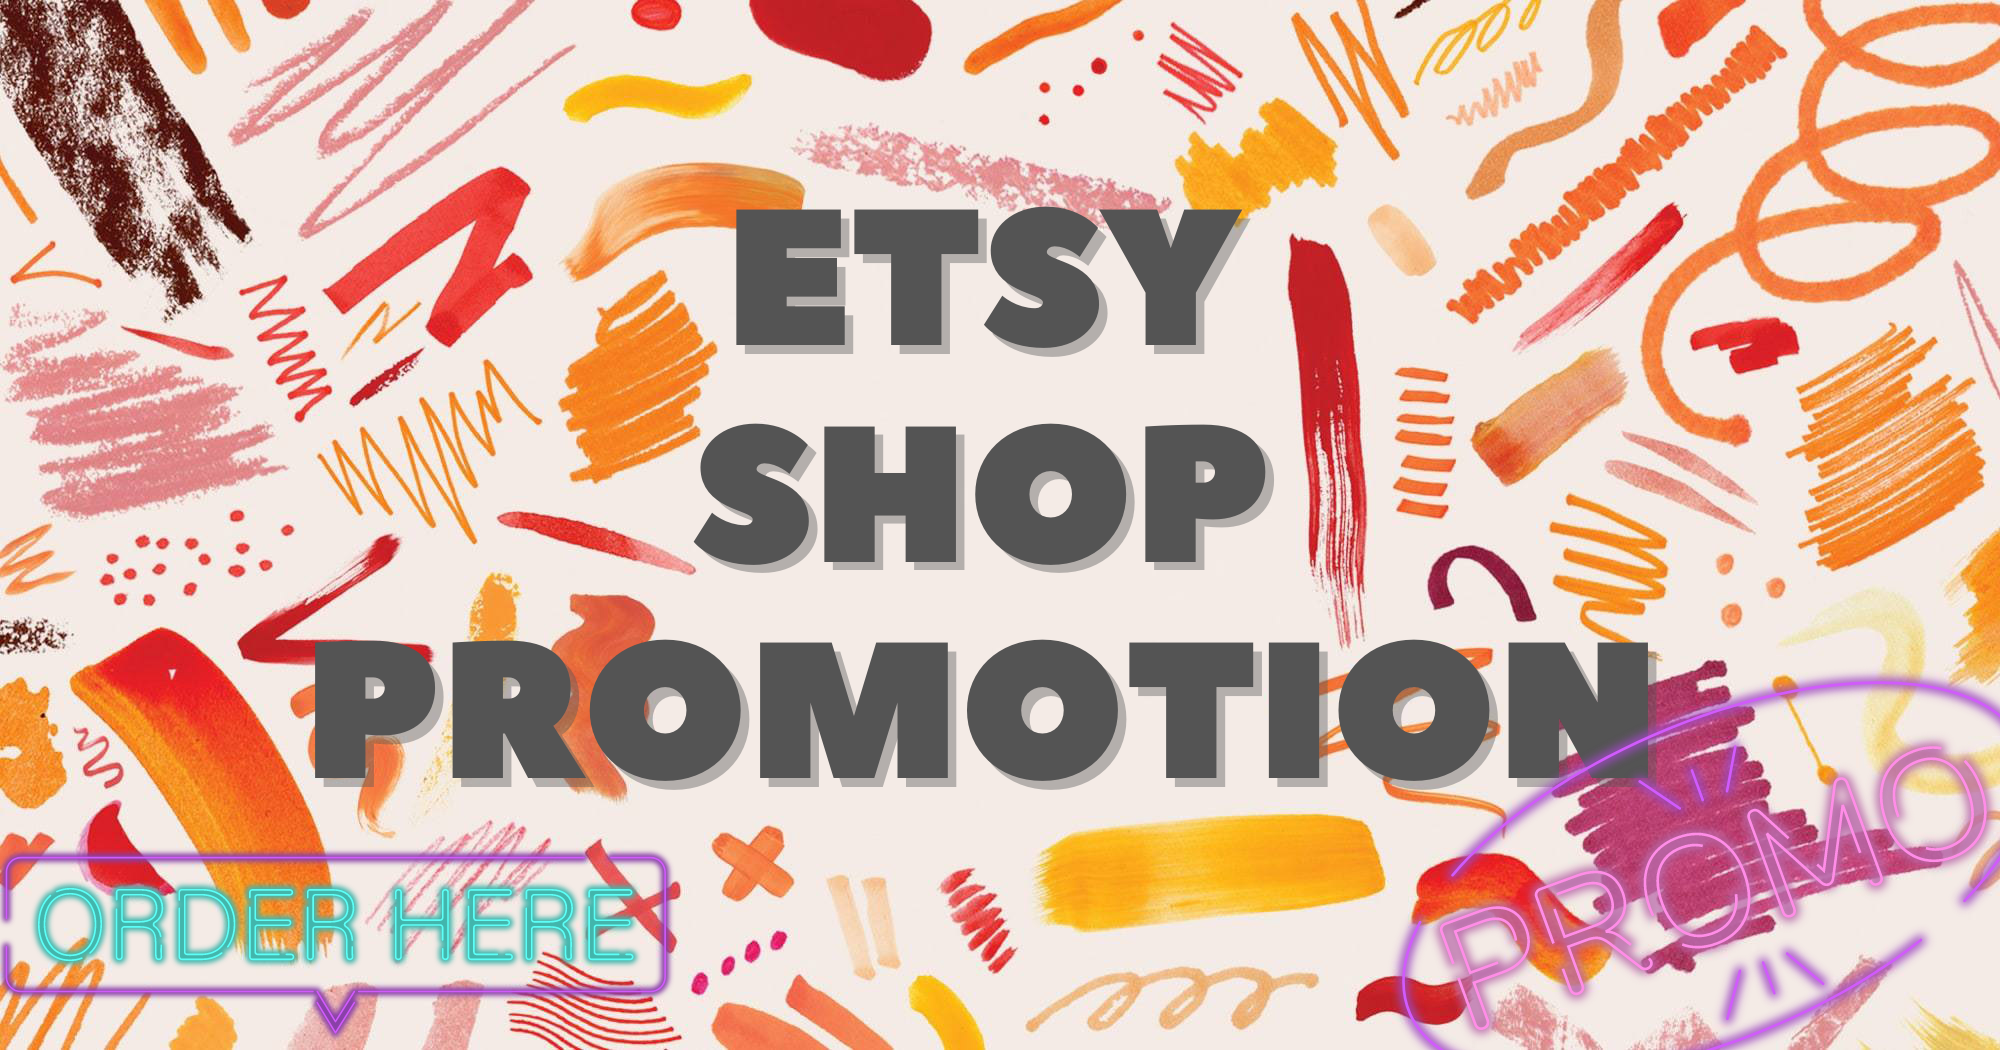 Etsy Shop Promotion Pack - Package Premium - 48 Hour Fast Delivery